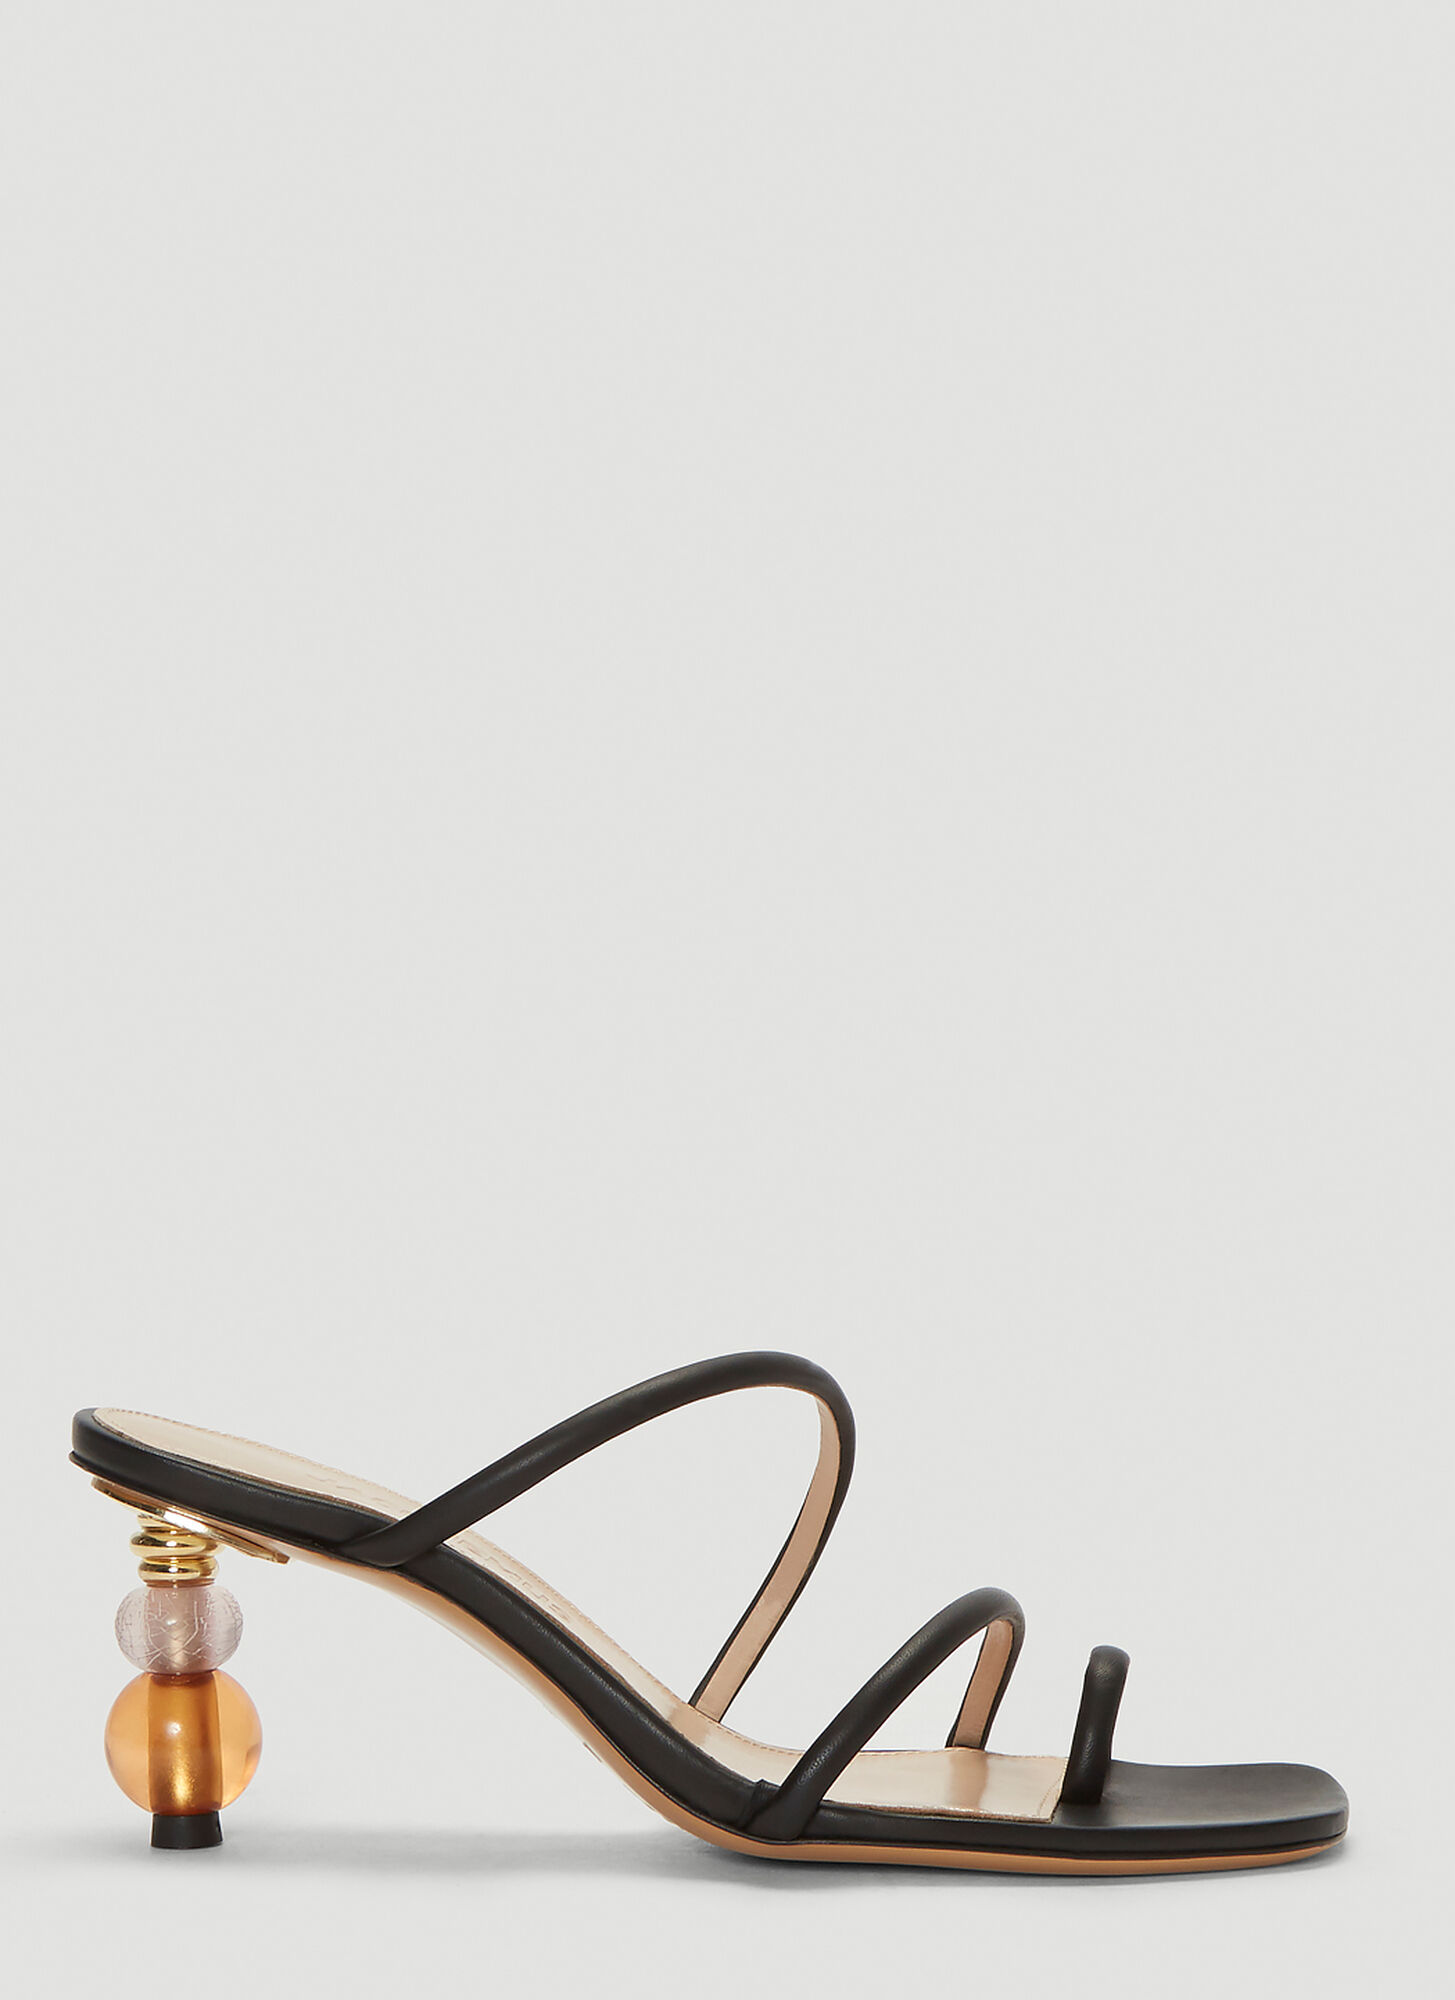 Jacquemus Noli Leather Sandals in Black